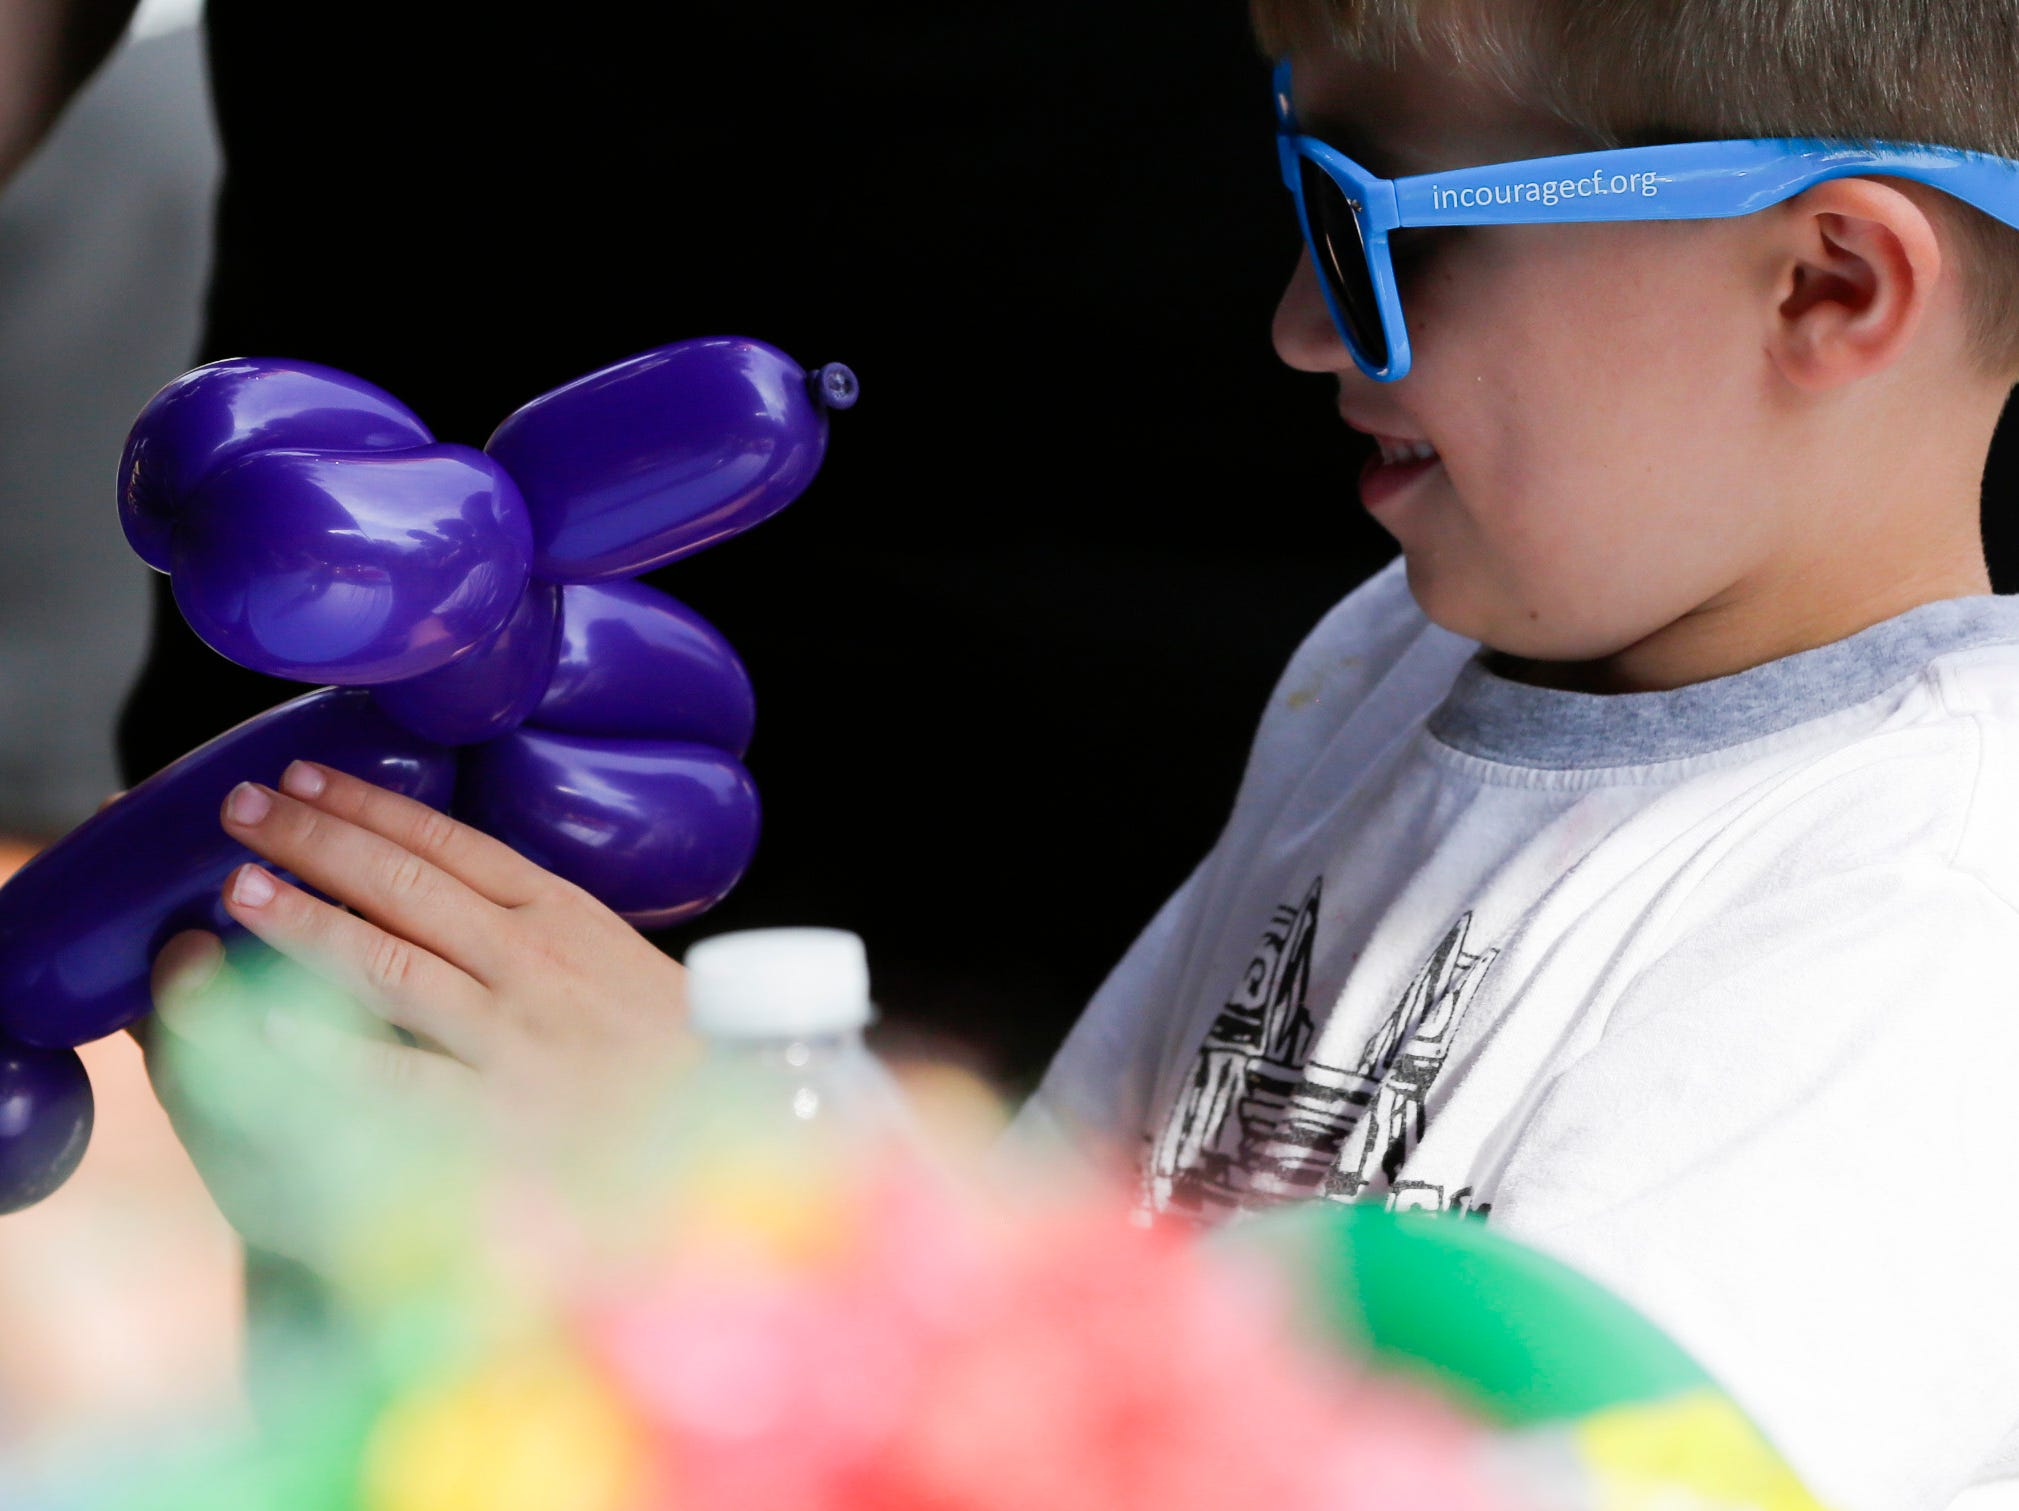 Sawyer Corea, 6, smiles at his new balloon dog at the Wisconsin Rapids community picnic on First Avenue South and Johnson Street Wednesday, August 1, 2018.